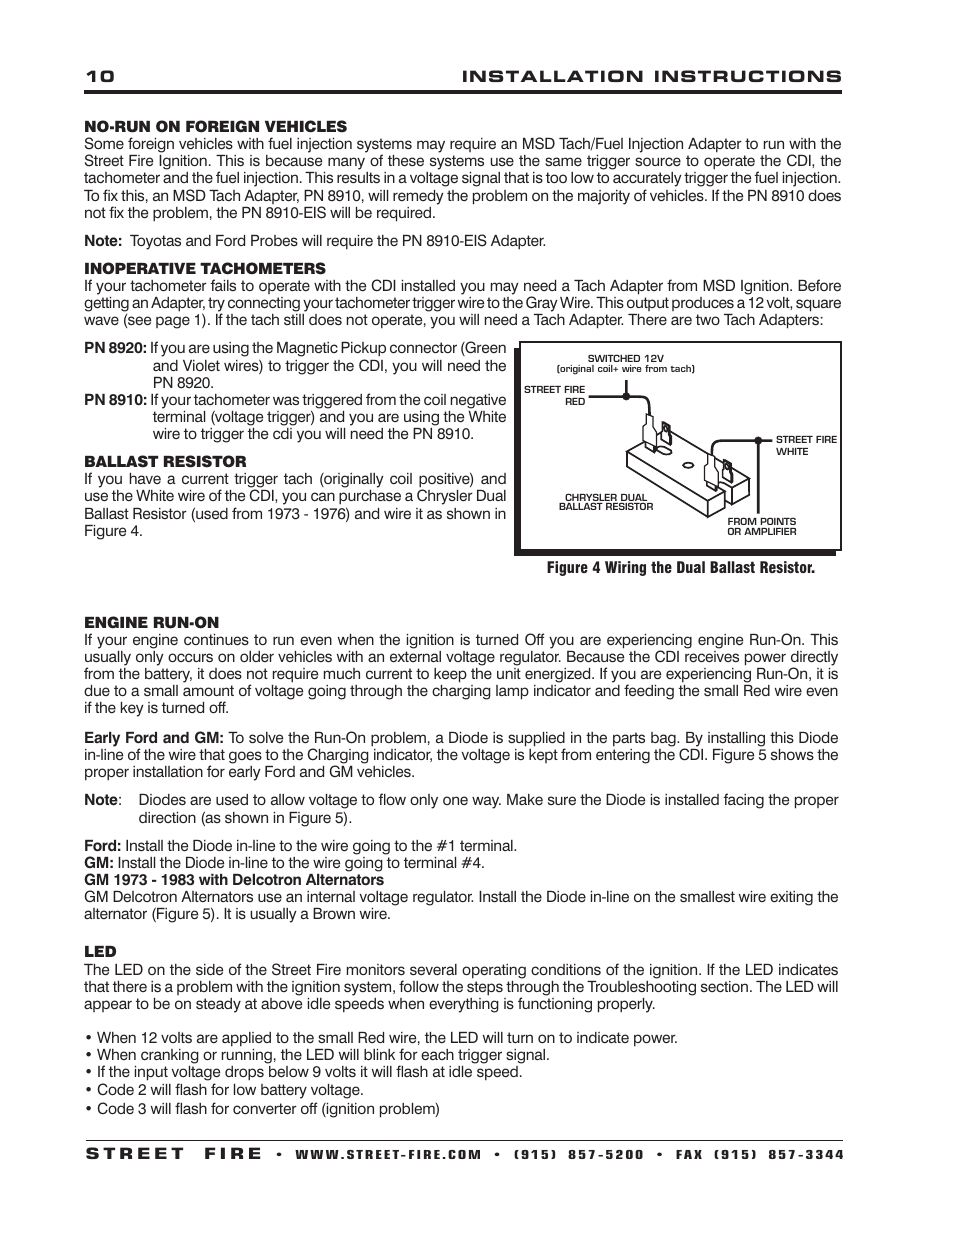 MSD 5520 Street Fire Ignition Control Installation User Manual